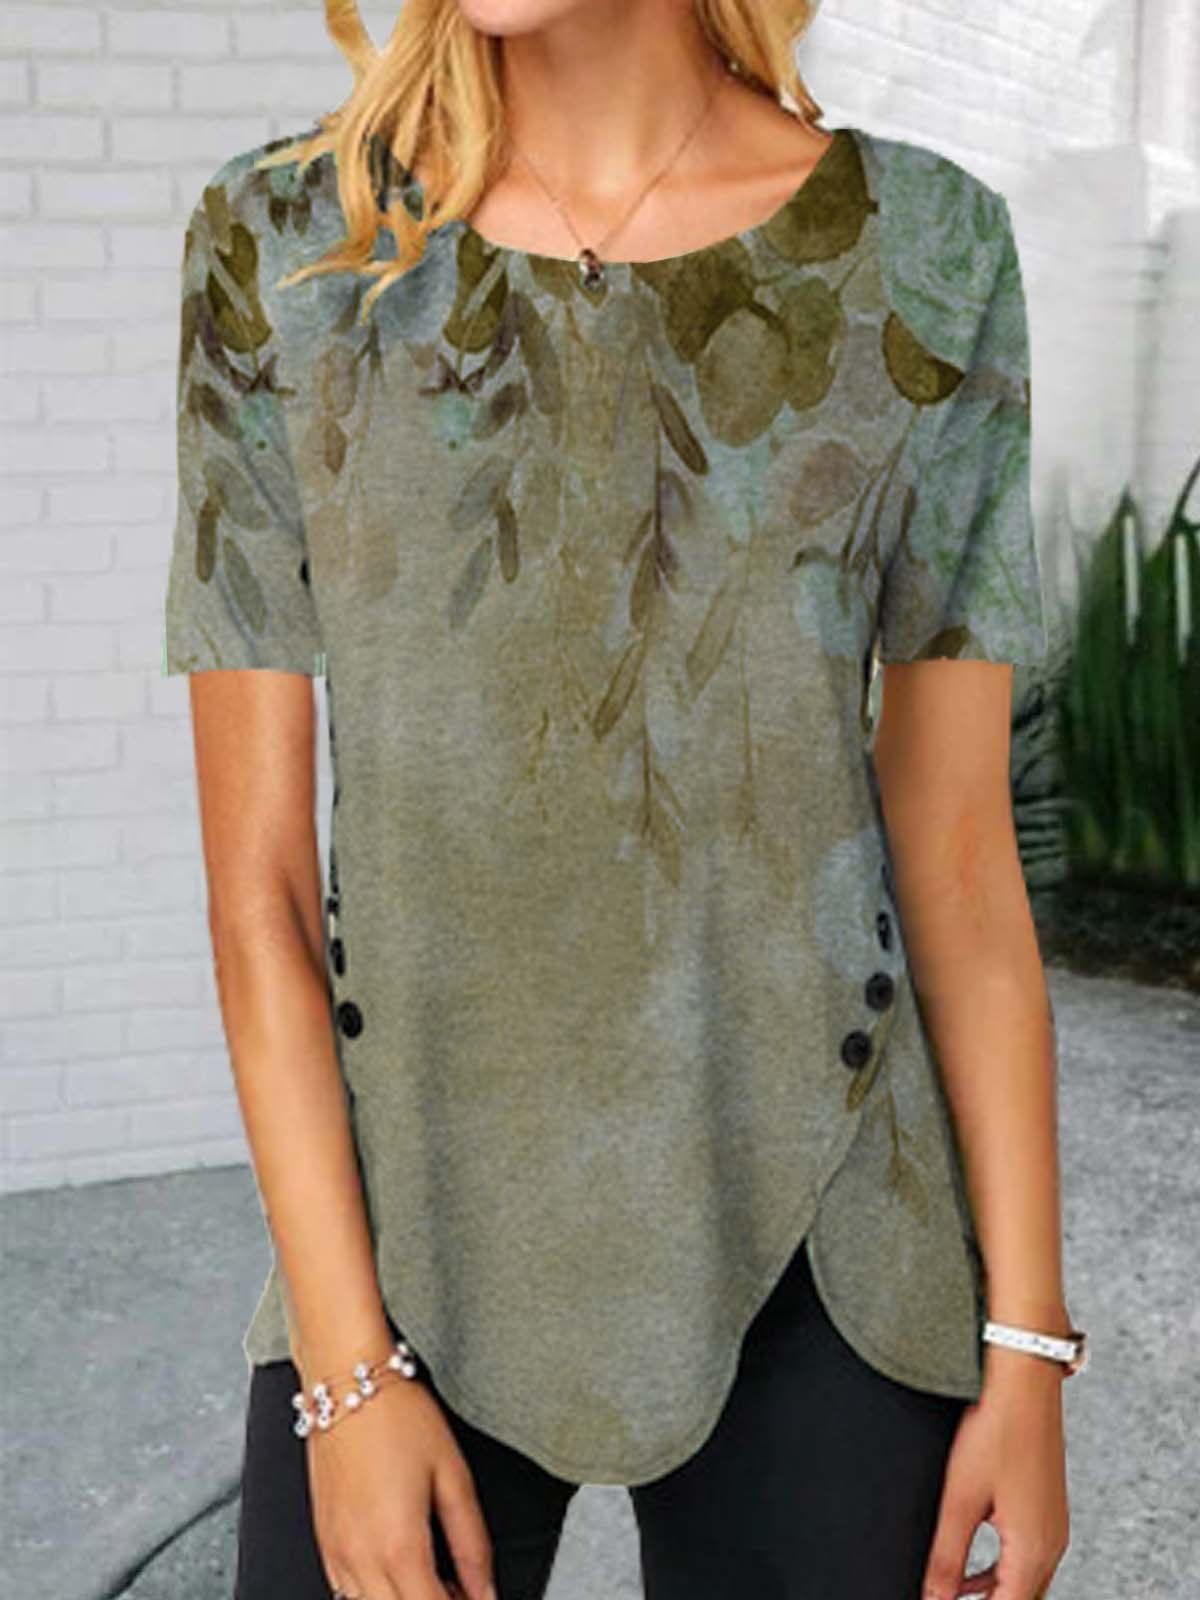 Floral  Short Sleeve  Printed Cotton-blend  Crew Neck Casual  Summer  Khaki Top